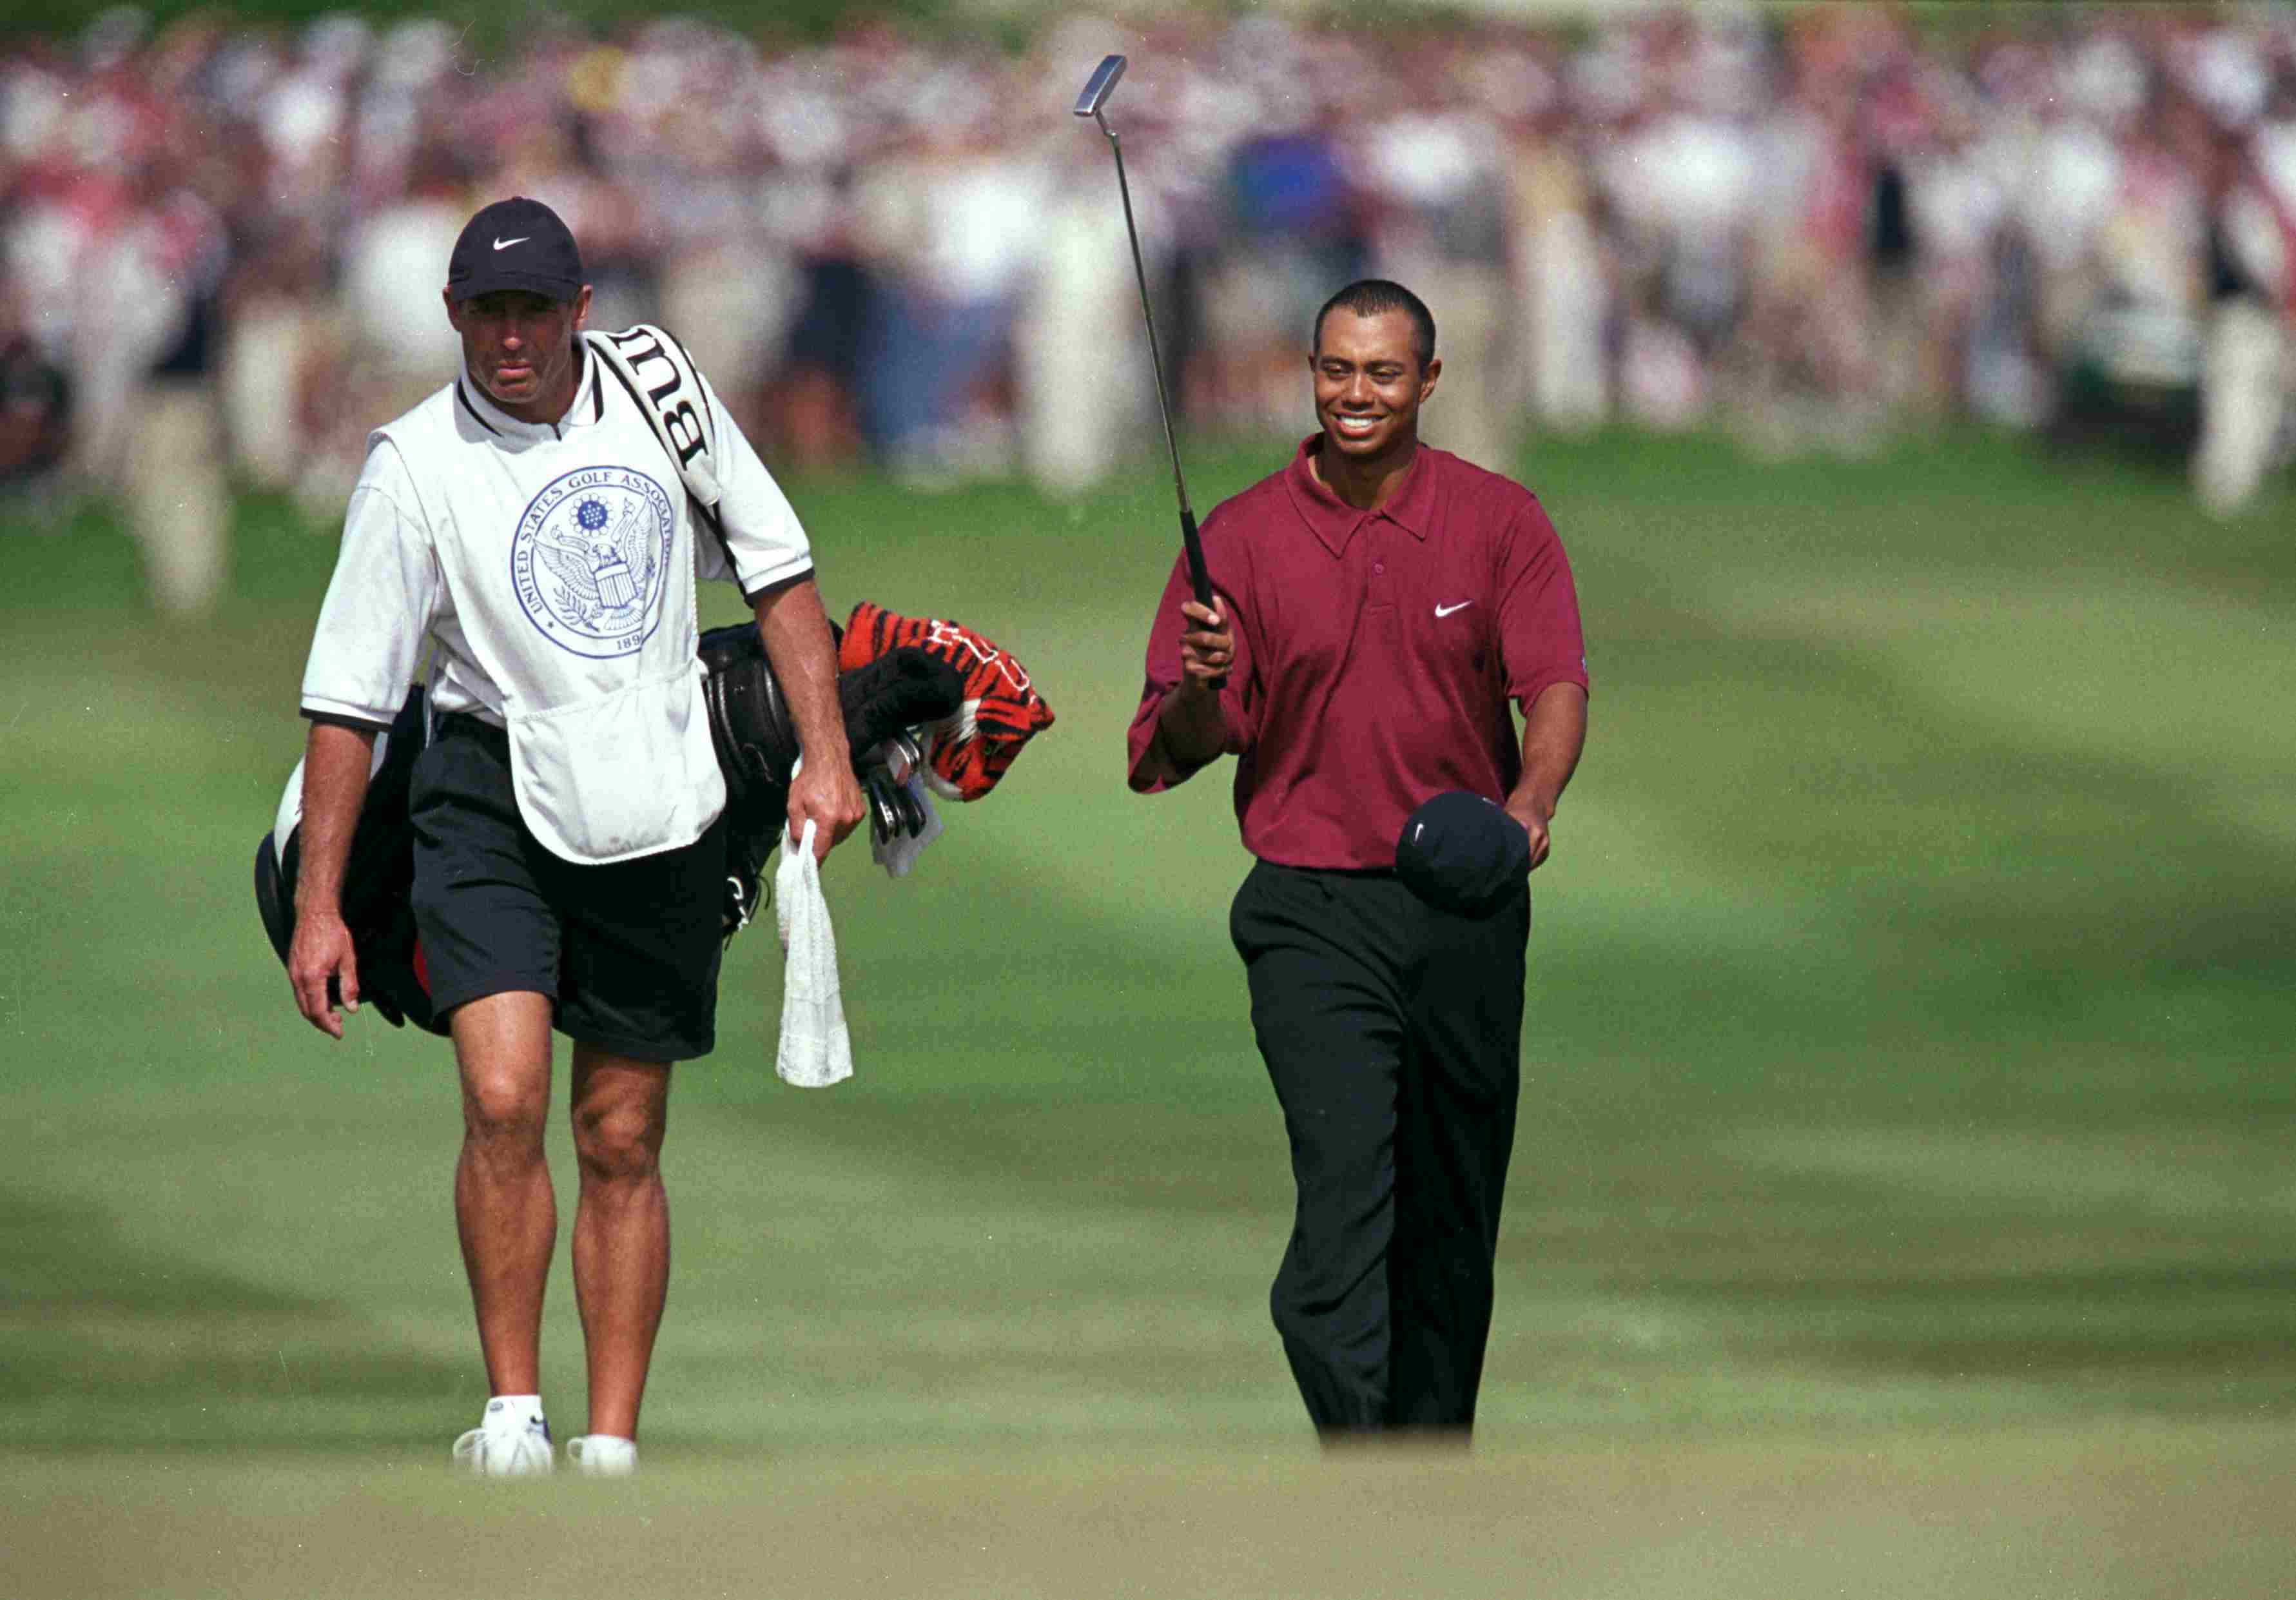 Tiger Woods with caddie Steve Williams at the 2000 US Open tournament.